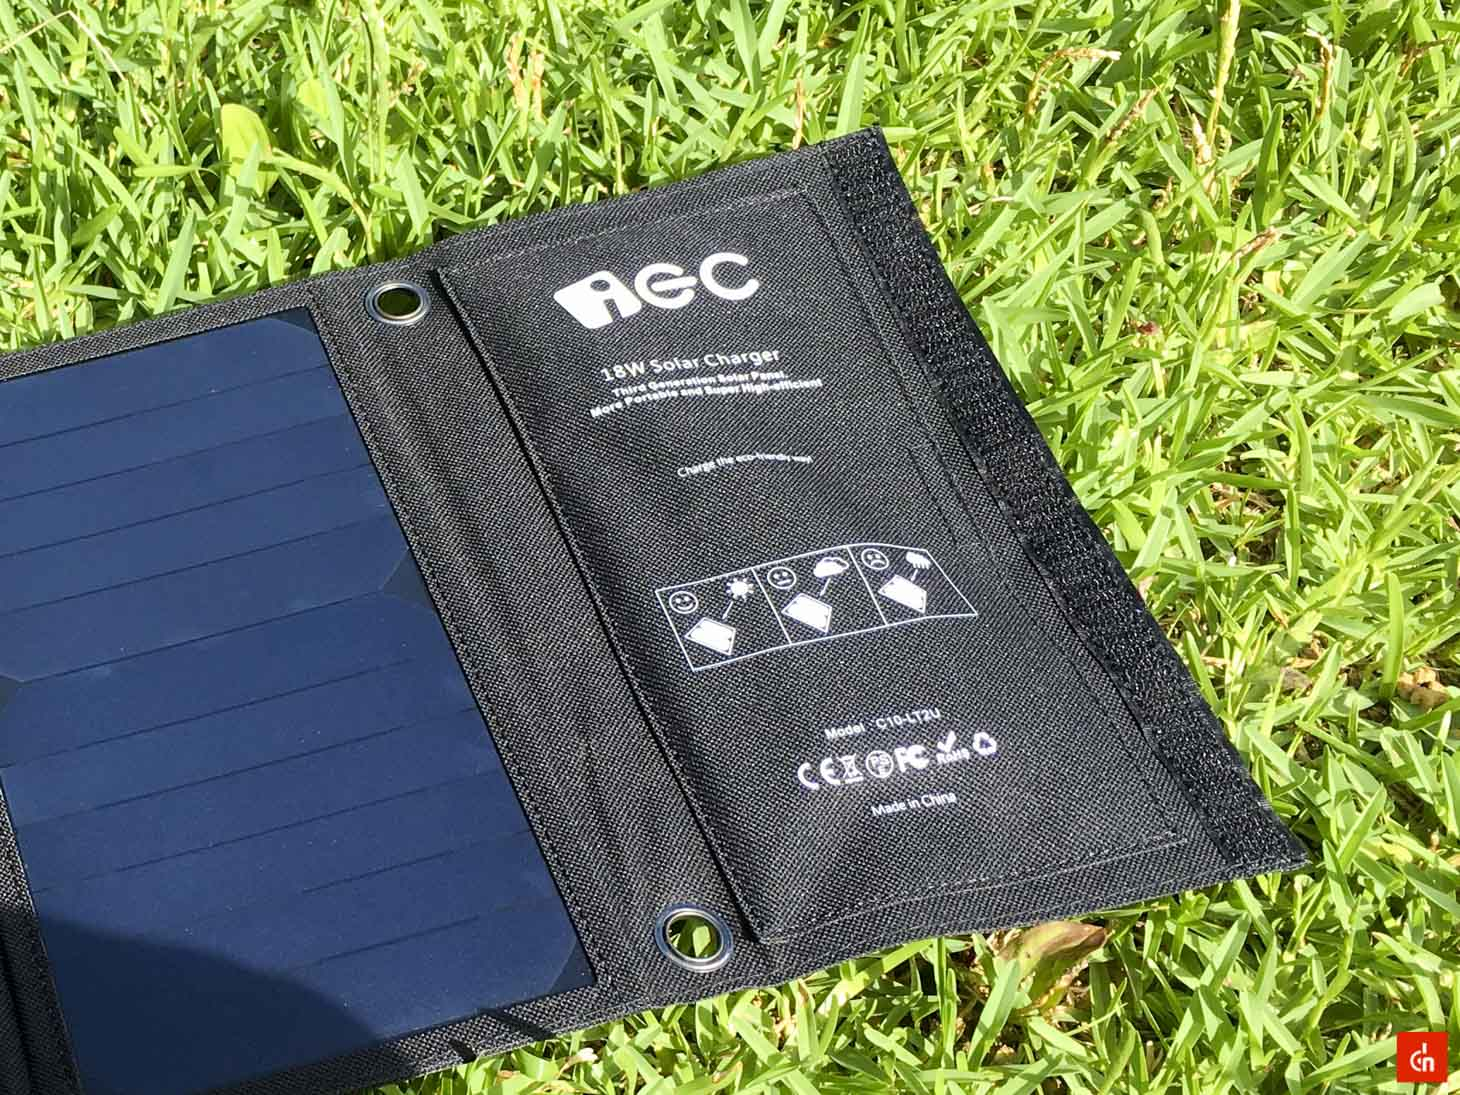 024_20160618_iec-solar-charger